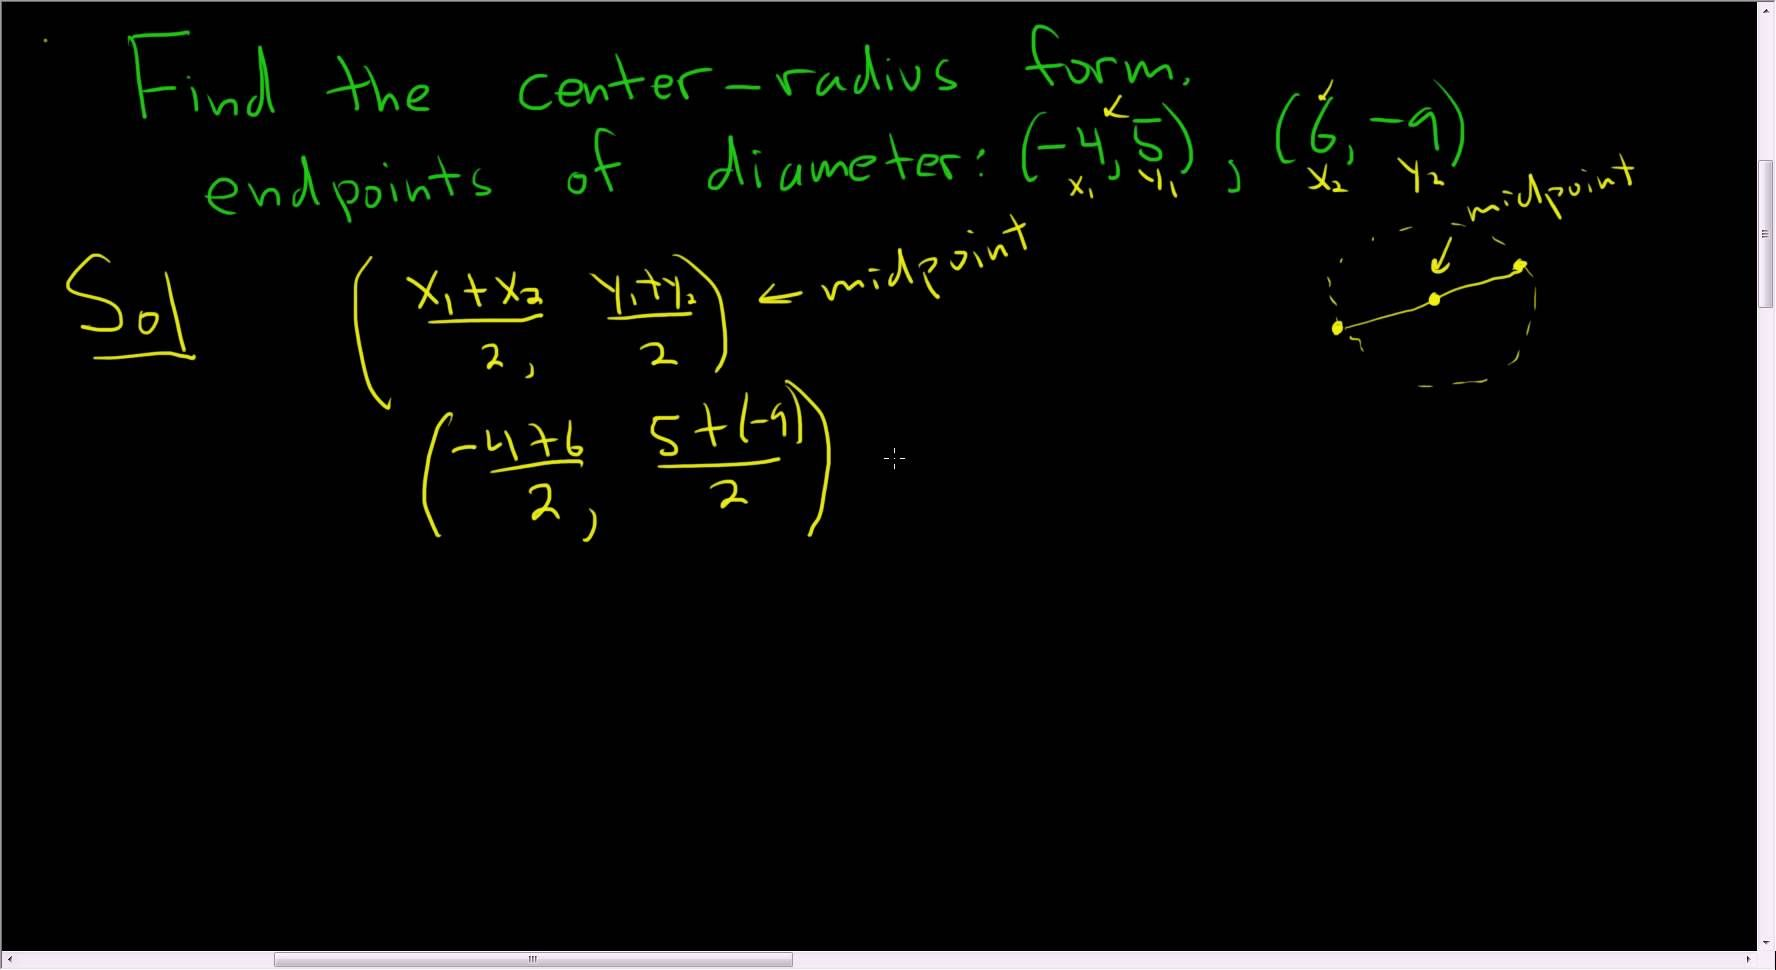 Finding the centerradius form of a circle the given